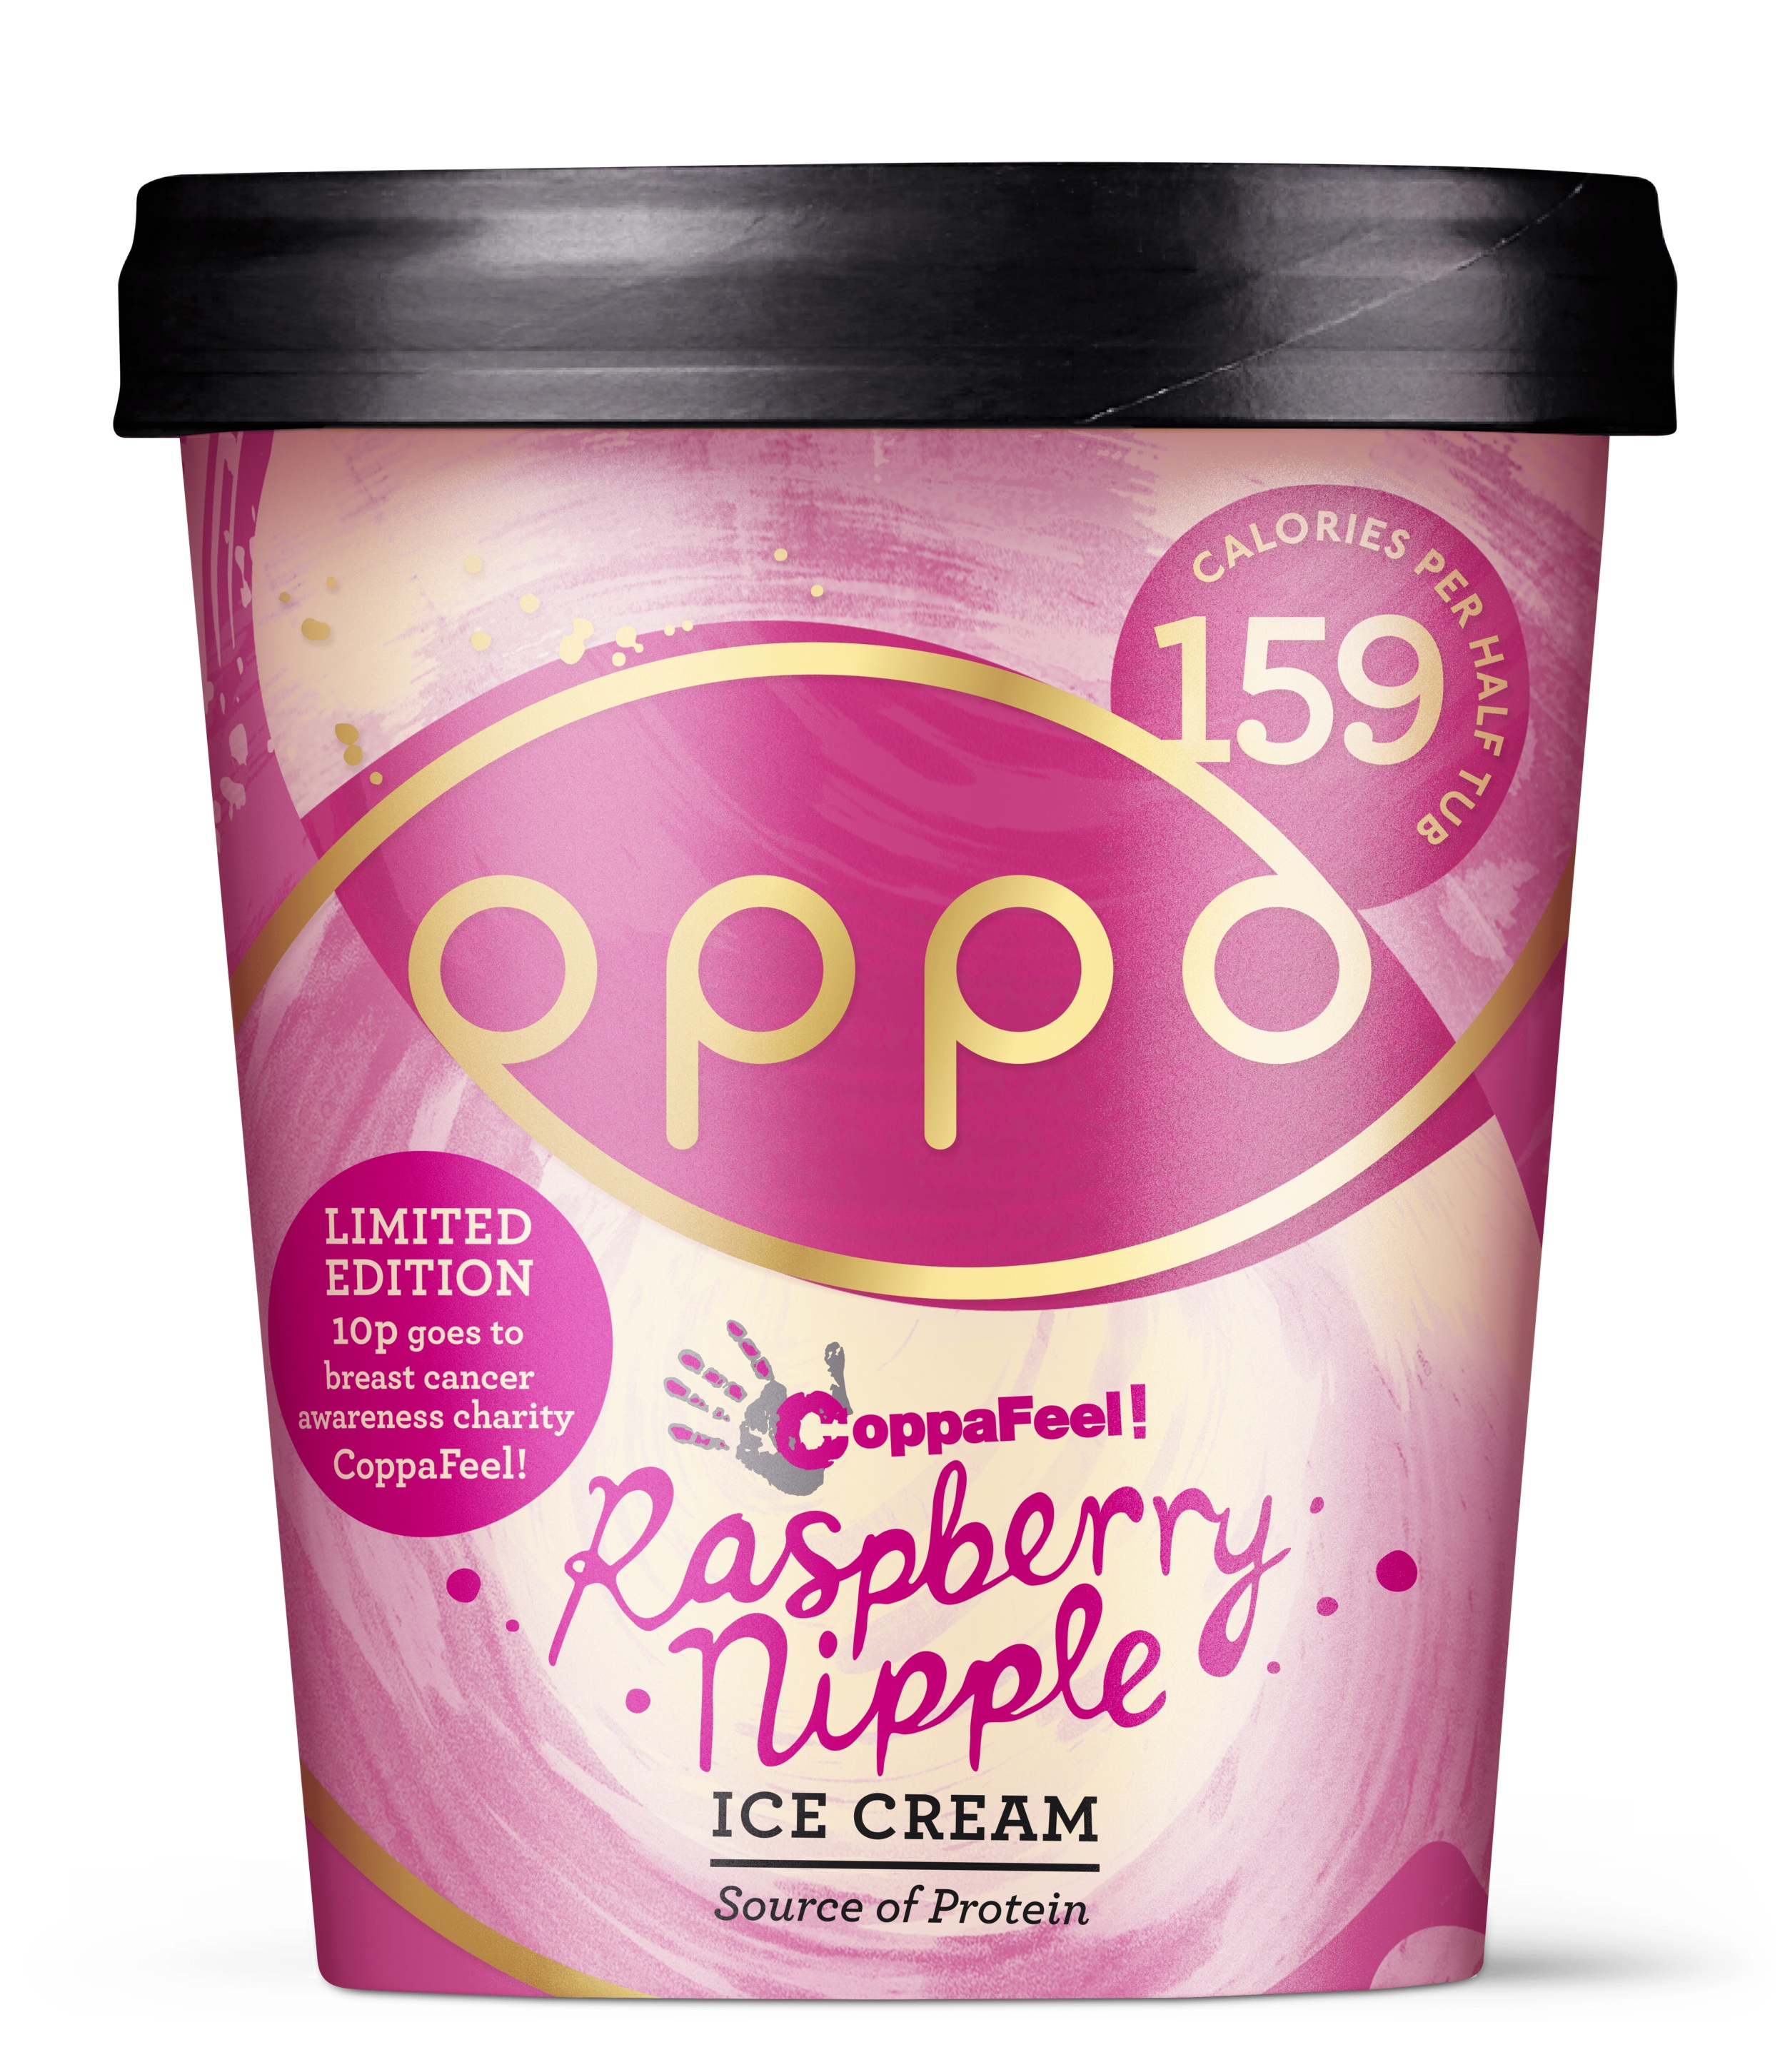 Oppo Raspberry Nipple Low Calorie